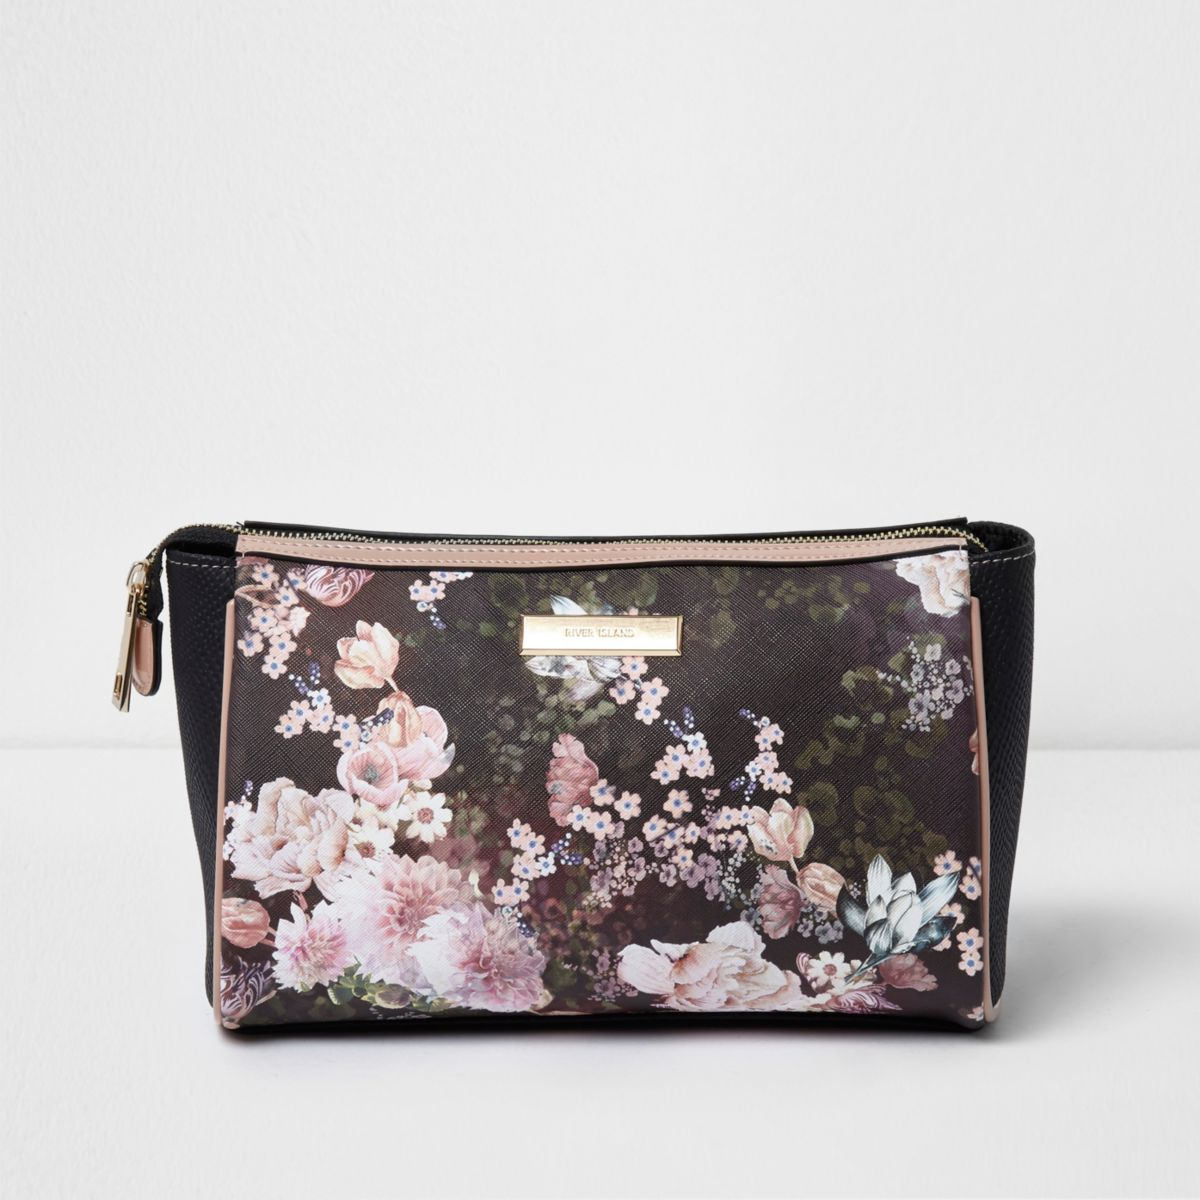 Black floral print make-up bag